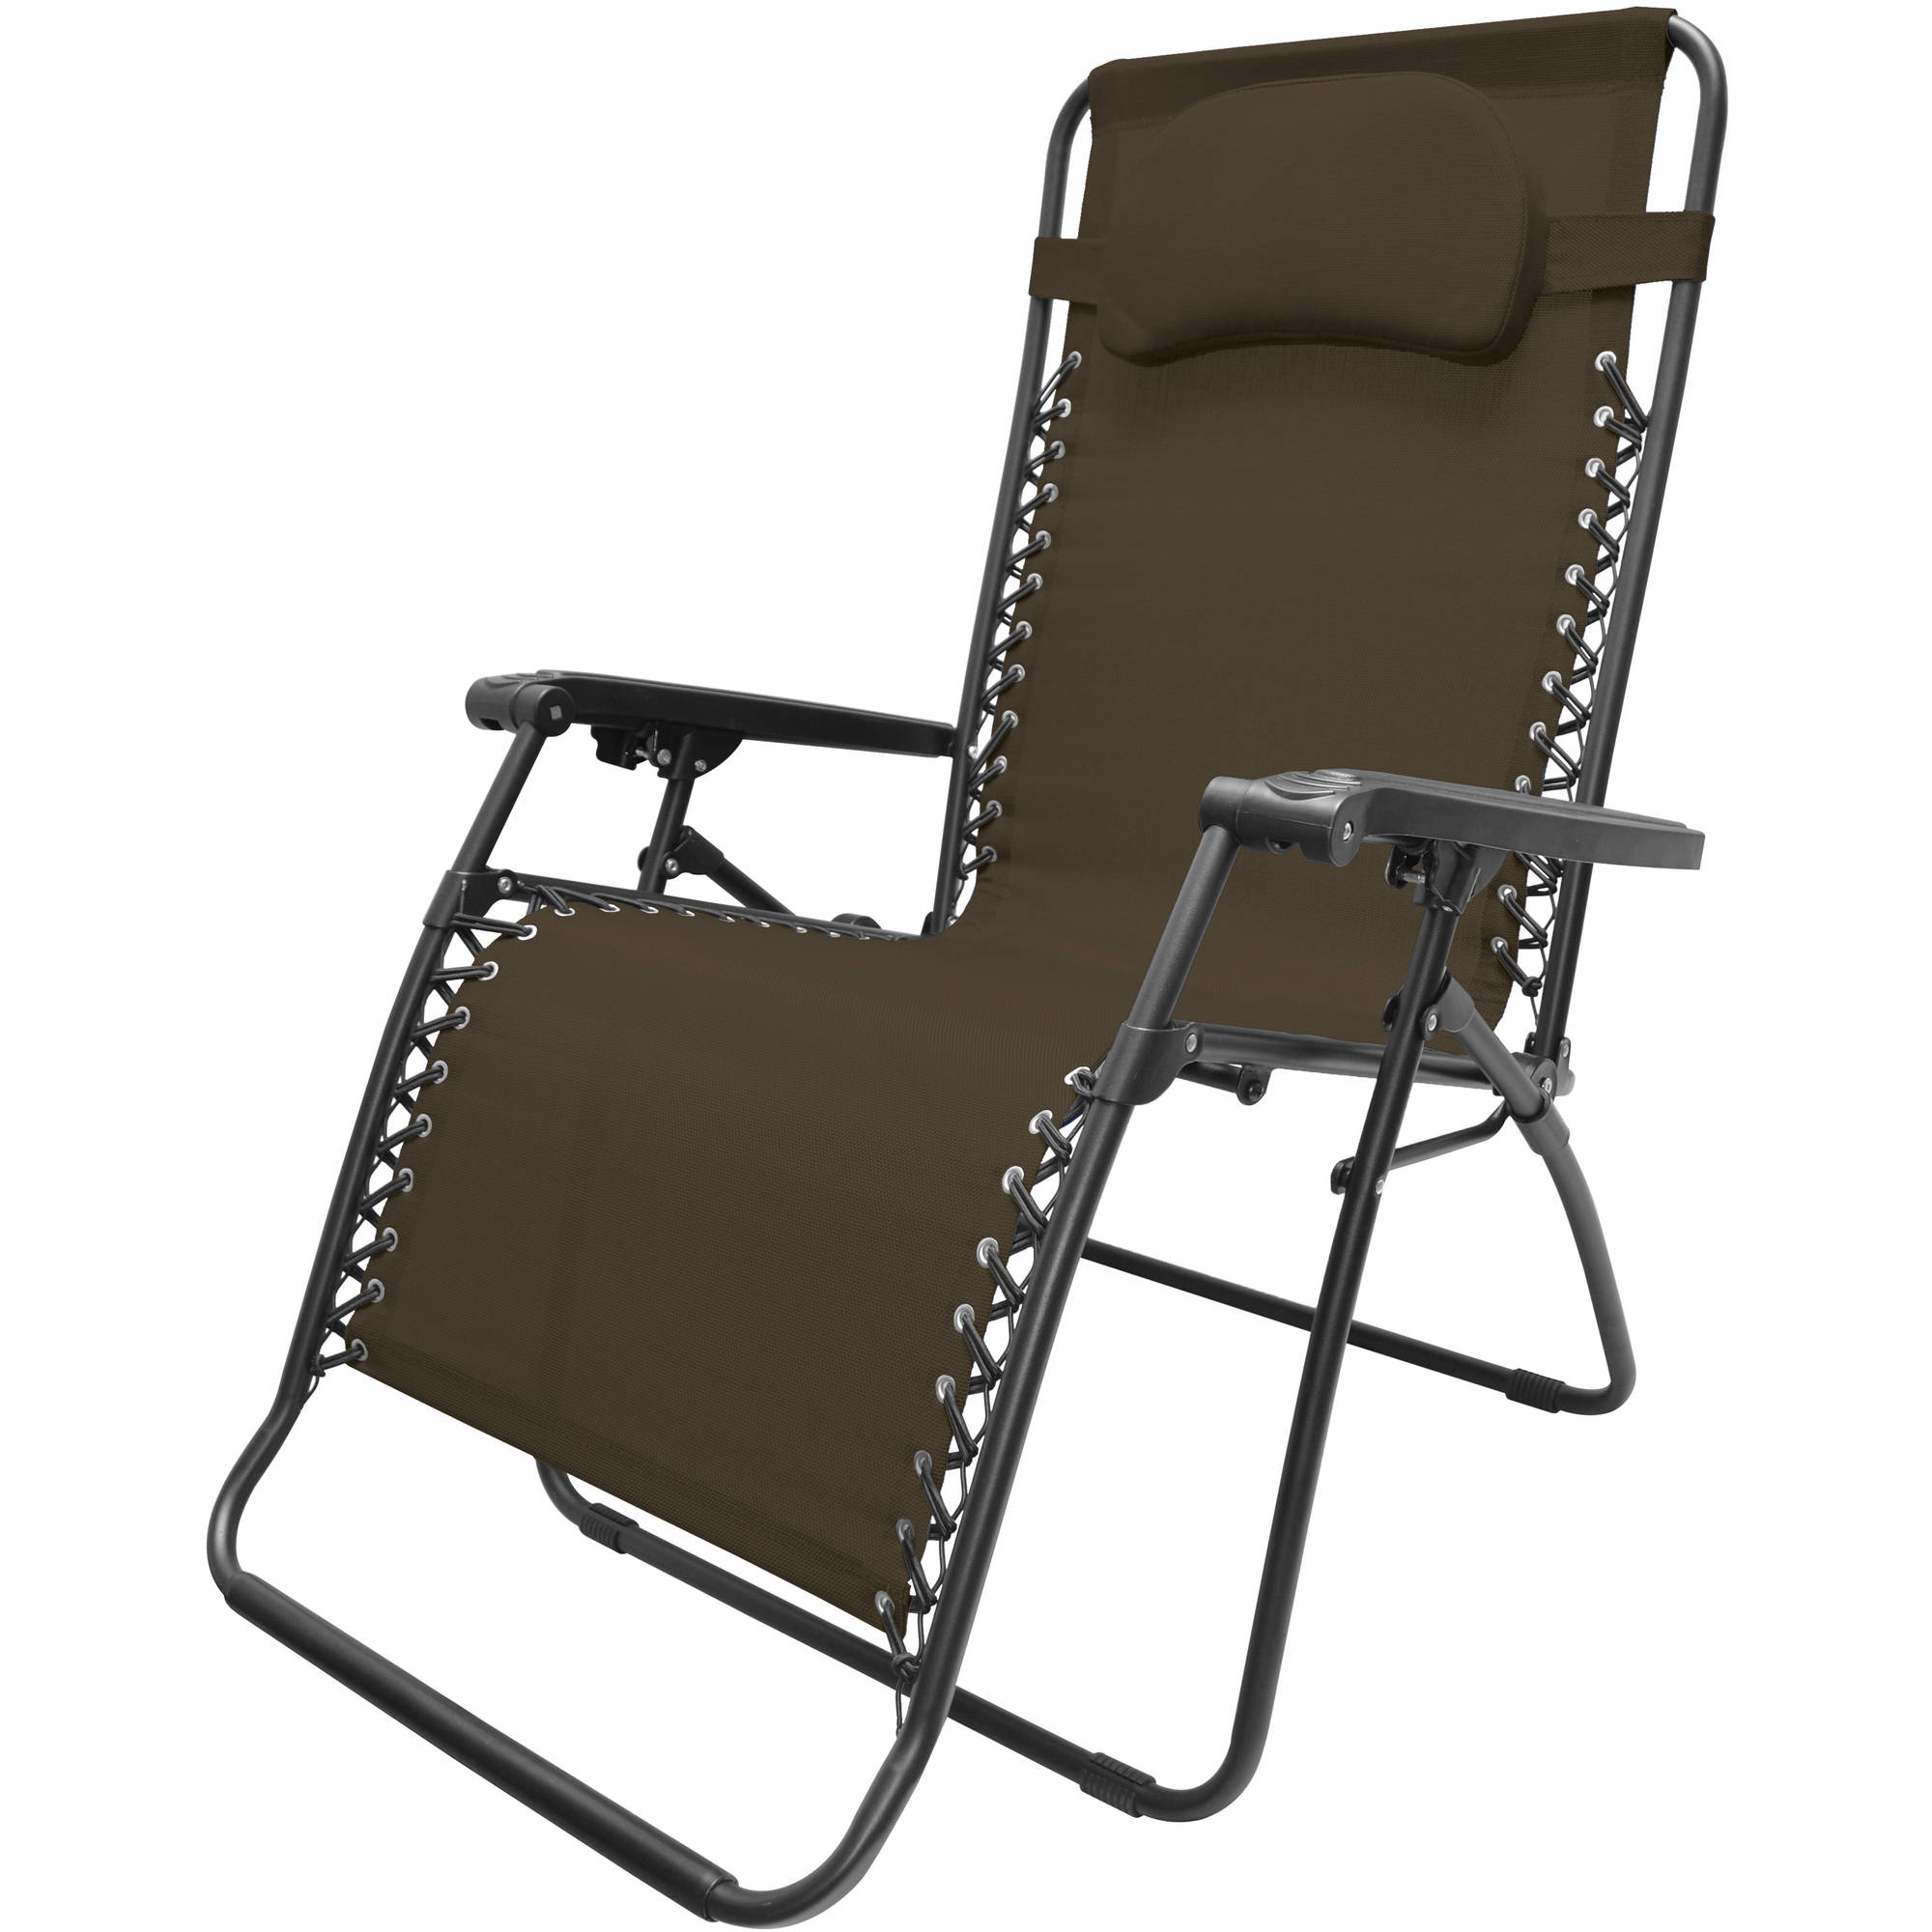 Caravan Sports Oversized Infinity Zero Gravity Chair, Brown